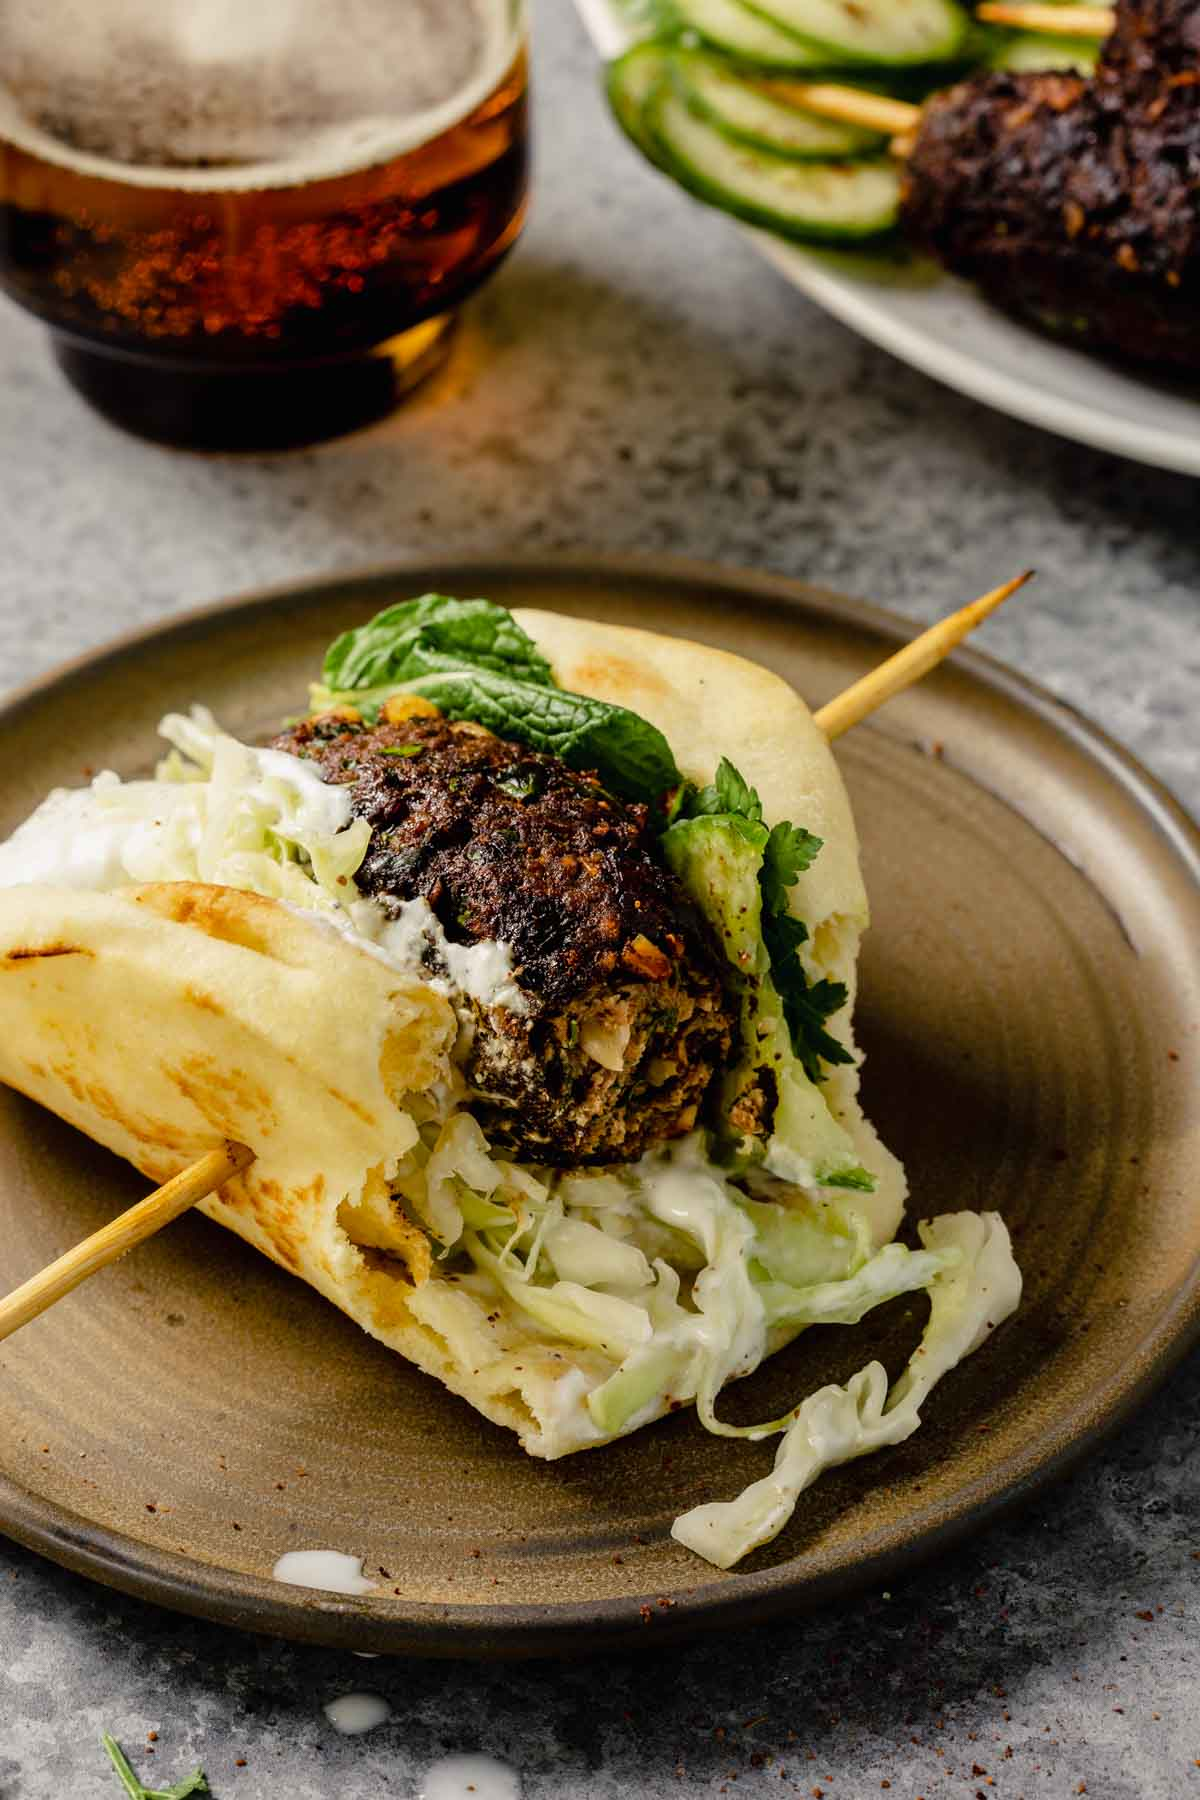 lamb kofta on a piece of naan bread topped with shredded cabbage, yogurt sauce, herbs and cucumber